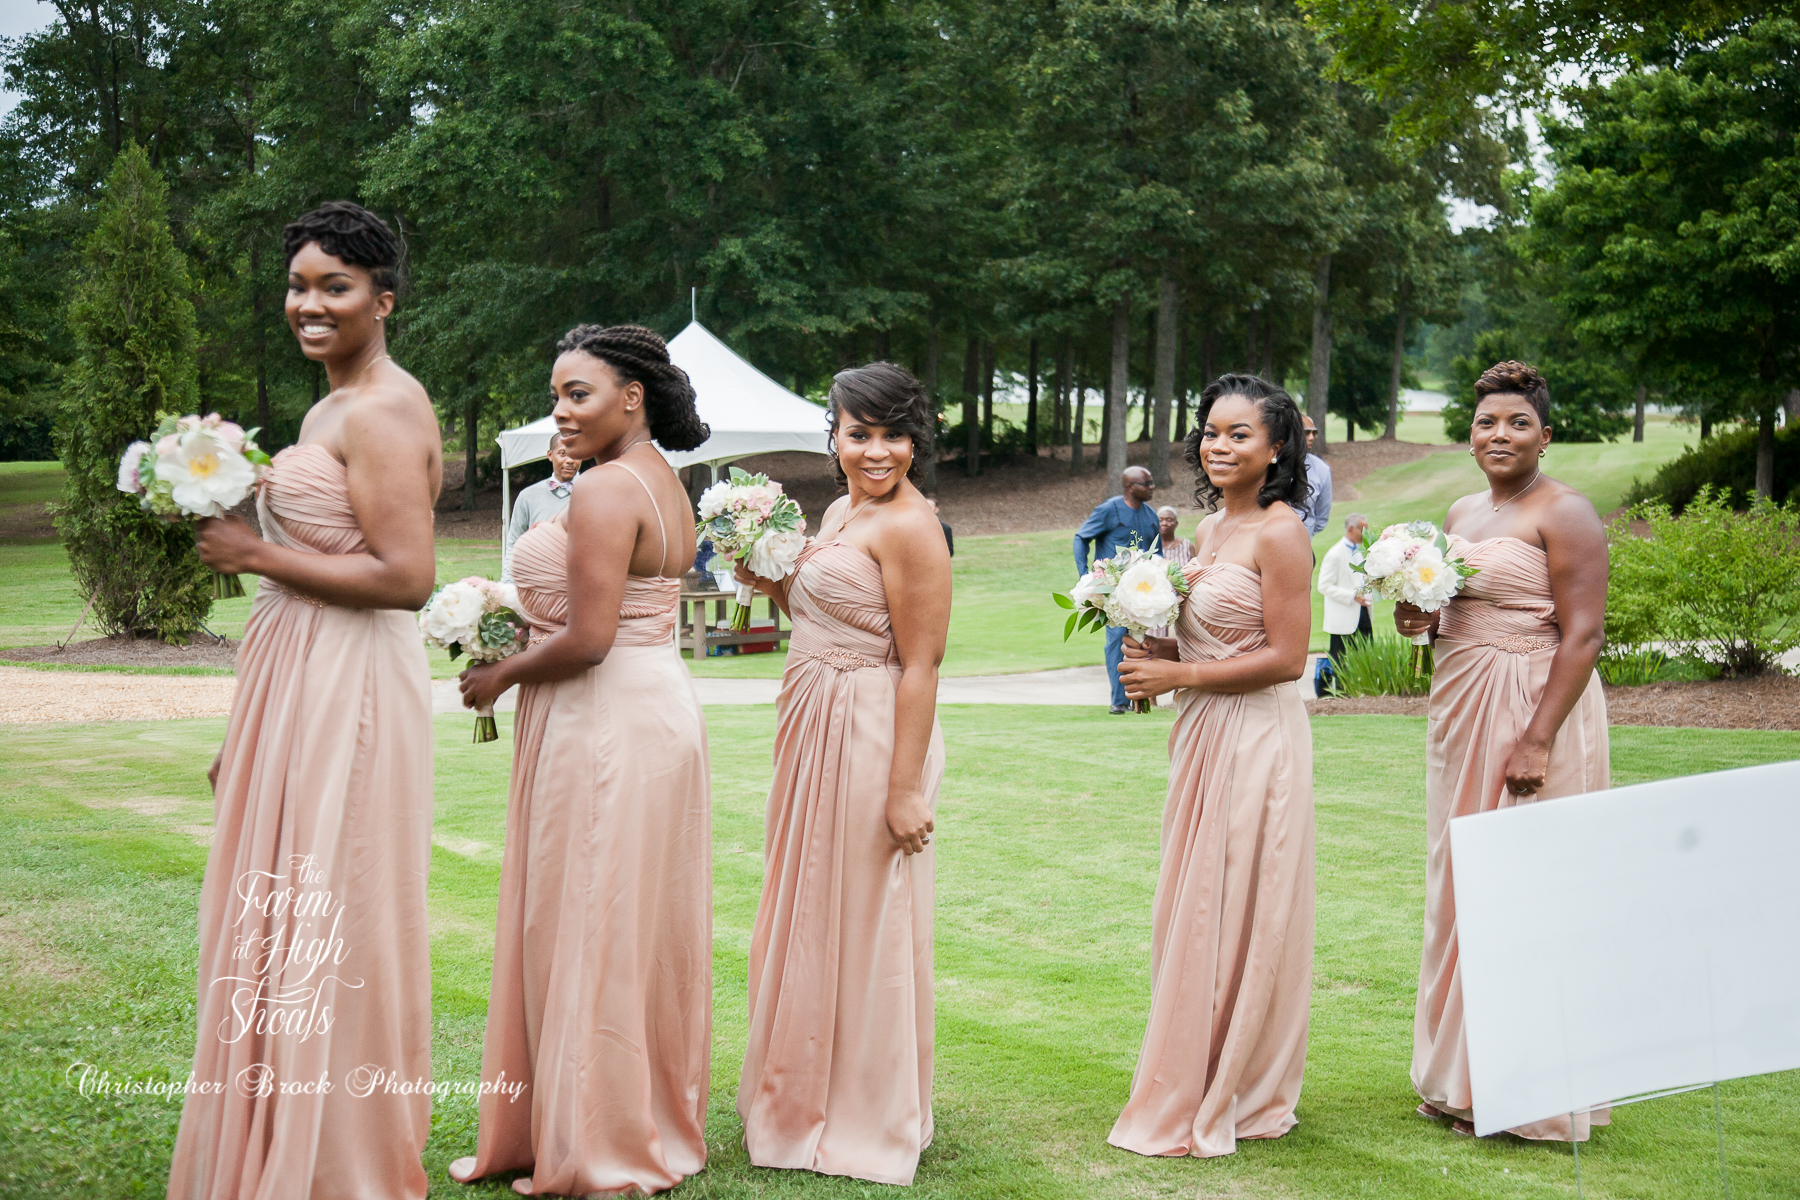 The Farm at High Shoals -- Atlanta Vineyard Wedding Venue (152 of 676)